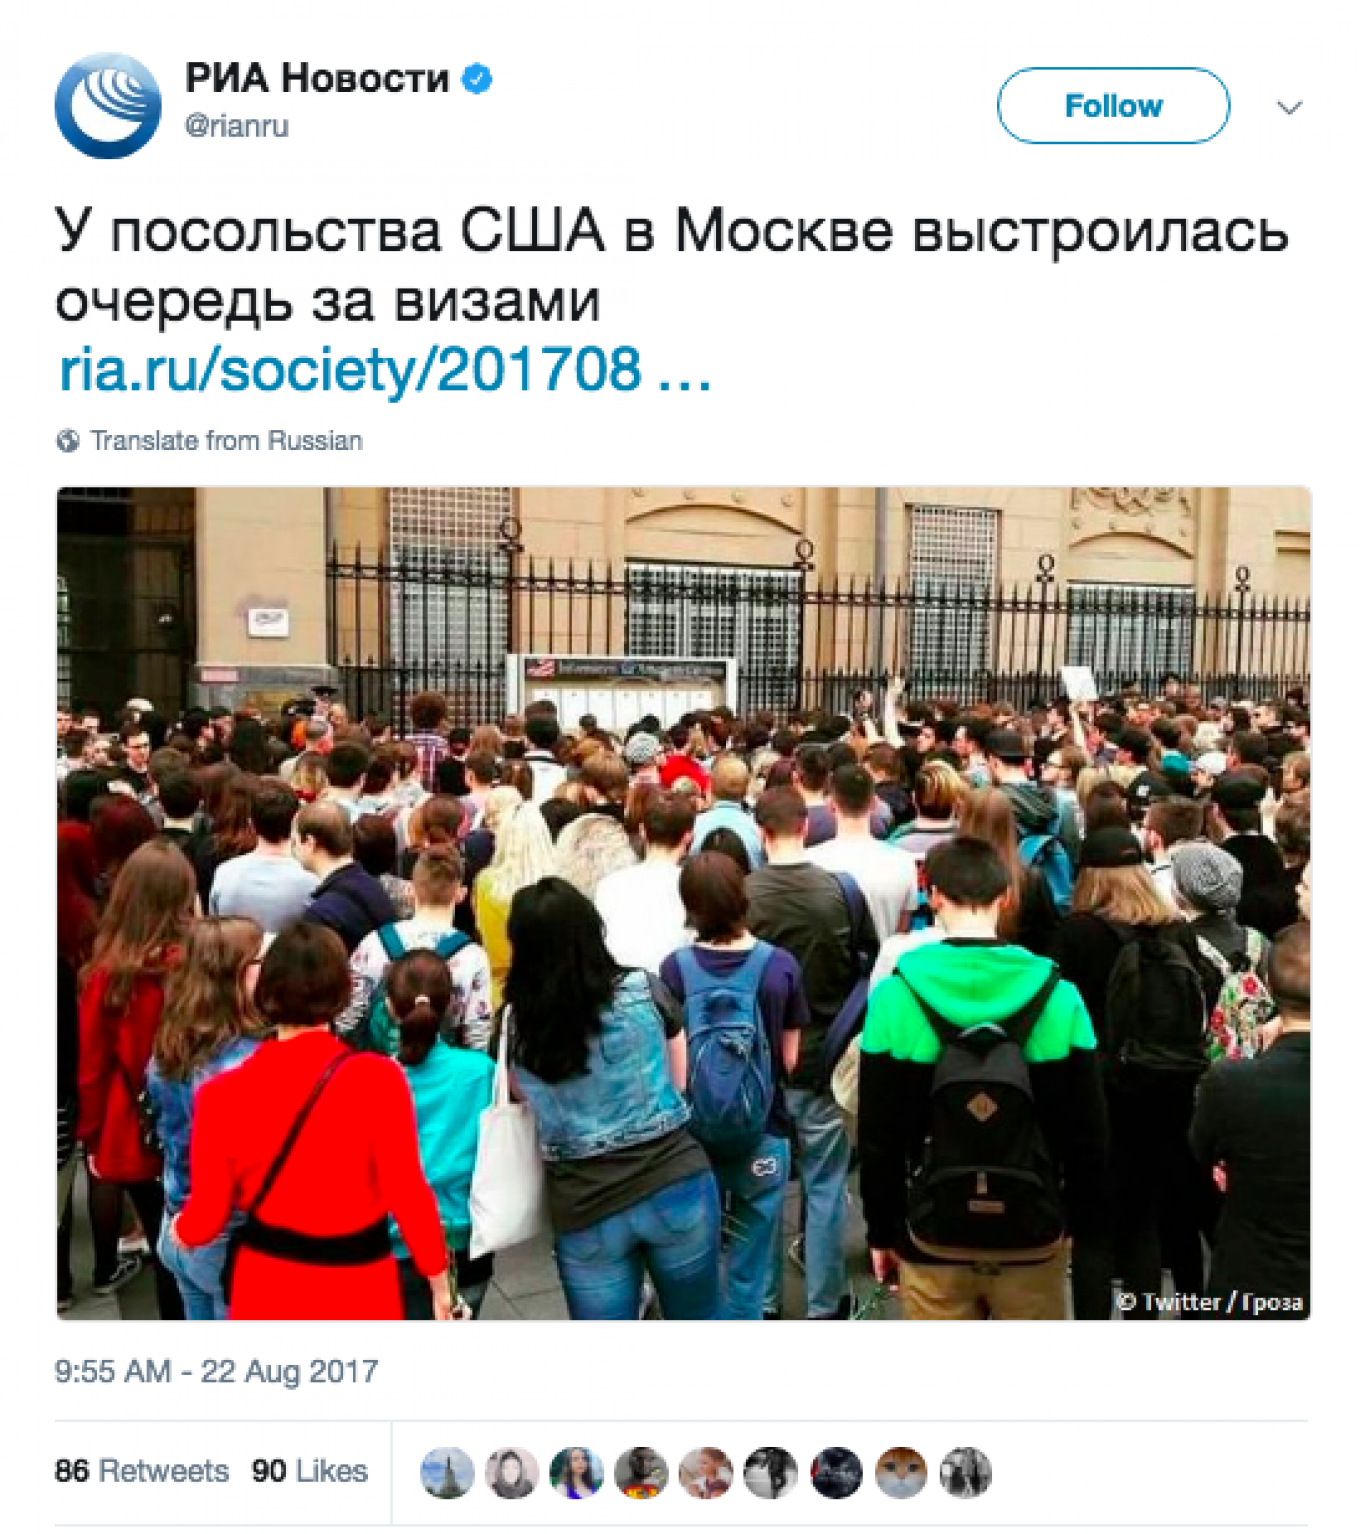 A screenshot of a tweet reportedly depicting large crowds outside the U.S. Embassy